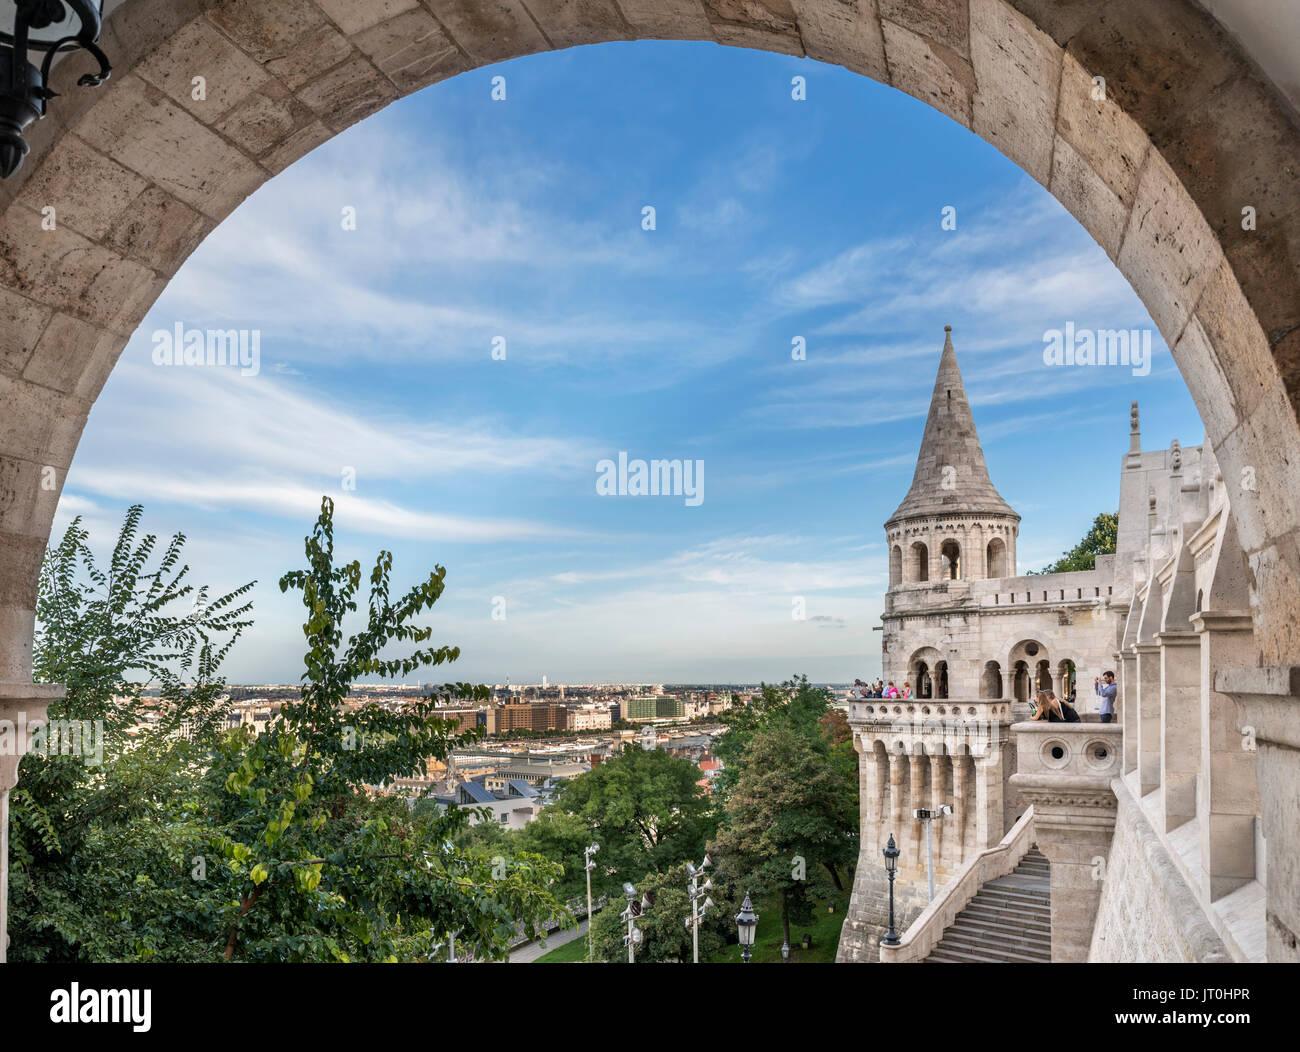 Fishermen's Bastion, Buda Castle district, Castle Hill, Budapest, Hungary - Stock Image